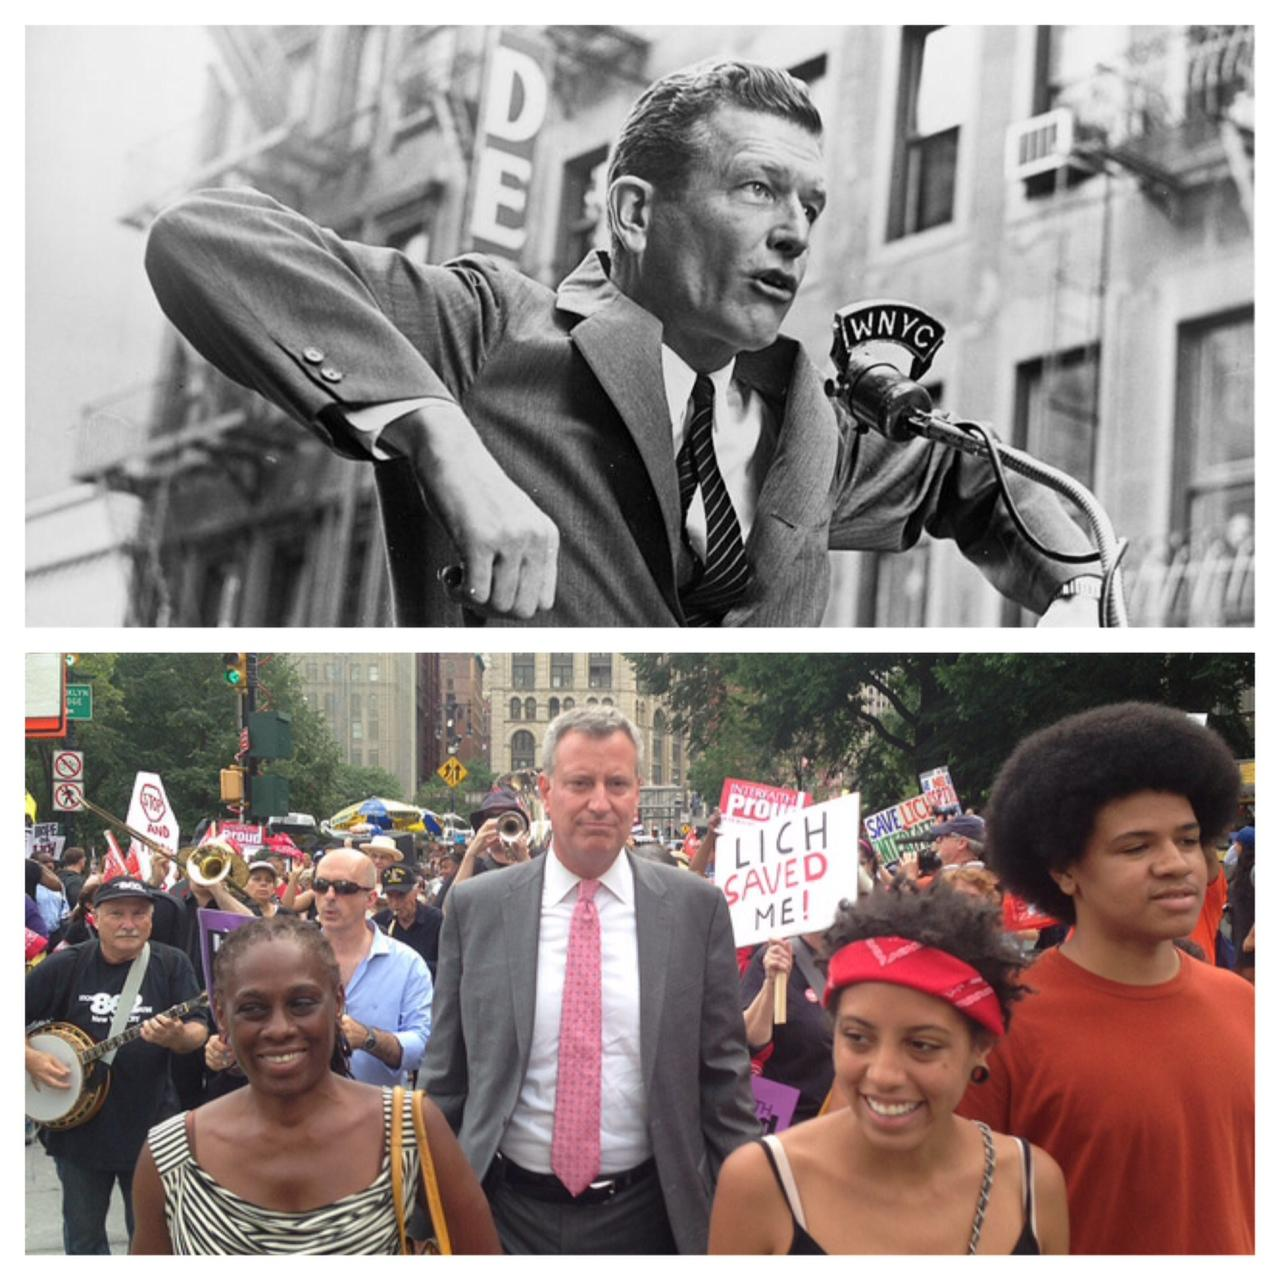 Above: In the mid-1960s, Mayor John V. Lindsay acts out his political vision for a crowd in Manhattan. Below: Mayor Bill de Blasio at a rally with his wife and two children. (WNYC / Courtesy of the Office of Public Advocate)